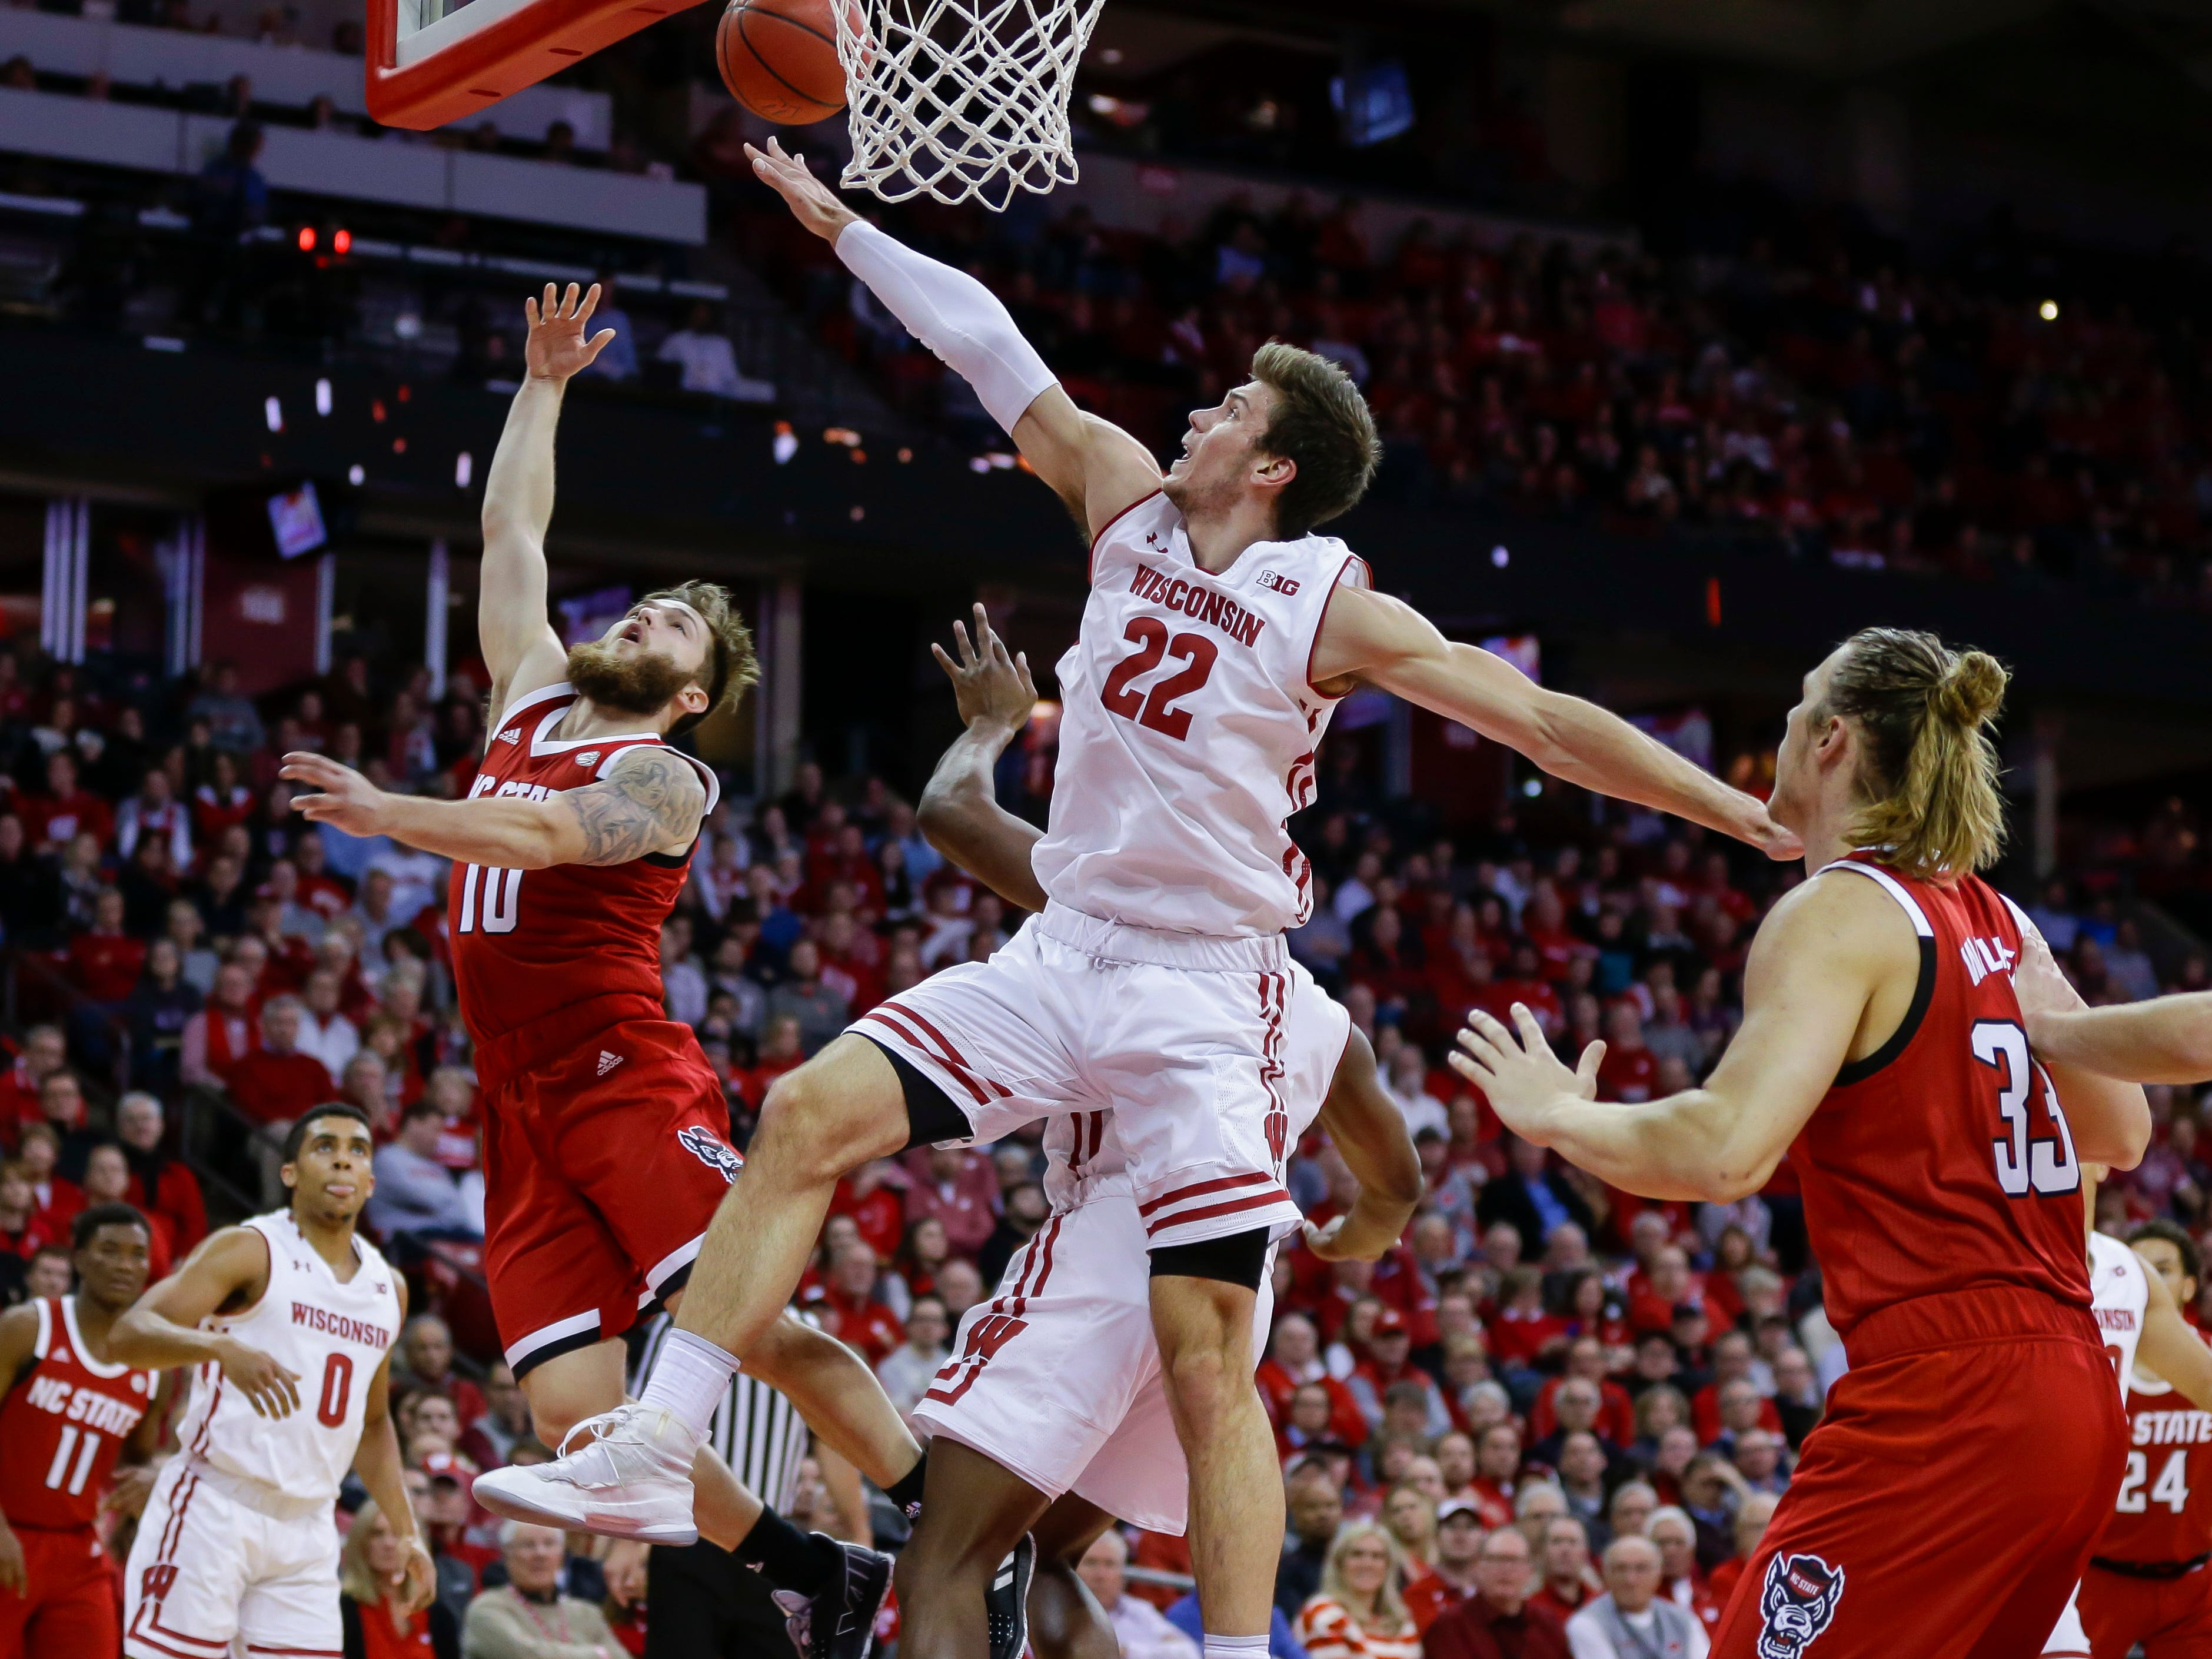 North Carolina State's Braxton Beverly tries to get a shot over Ethan Happ.